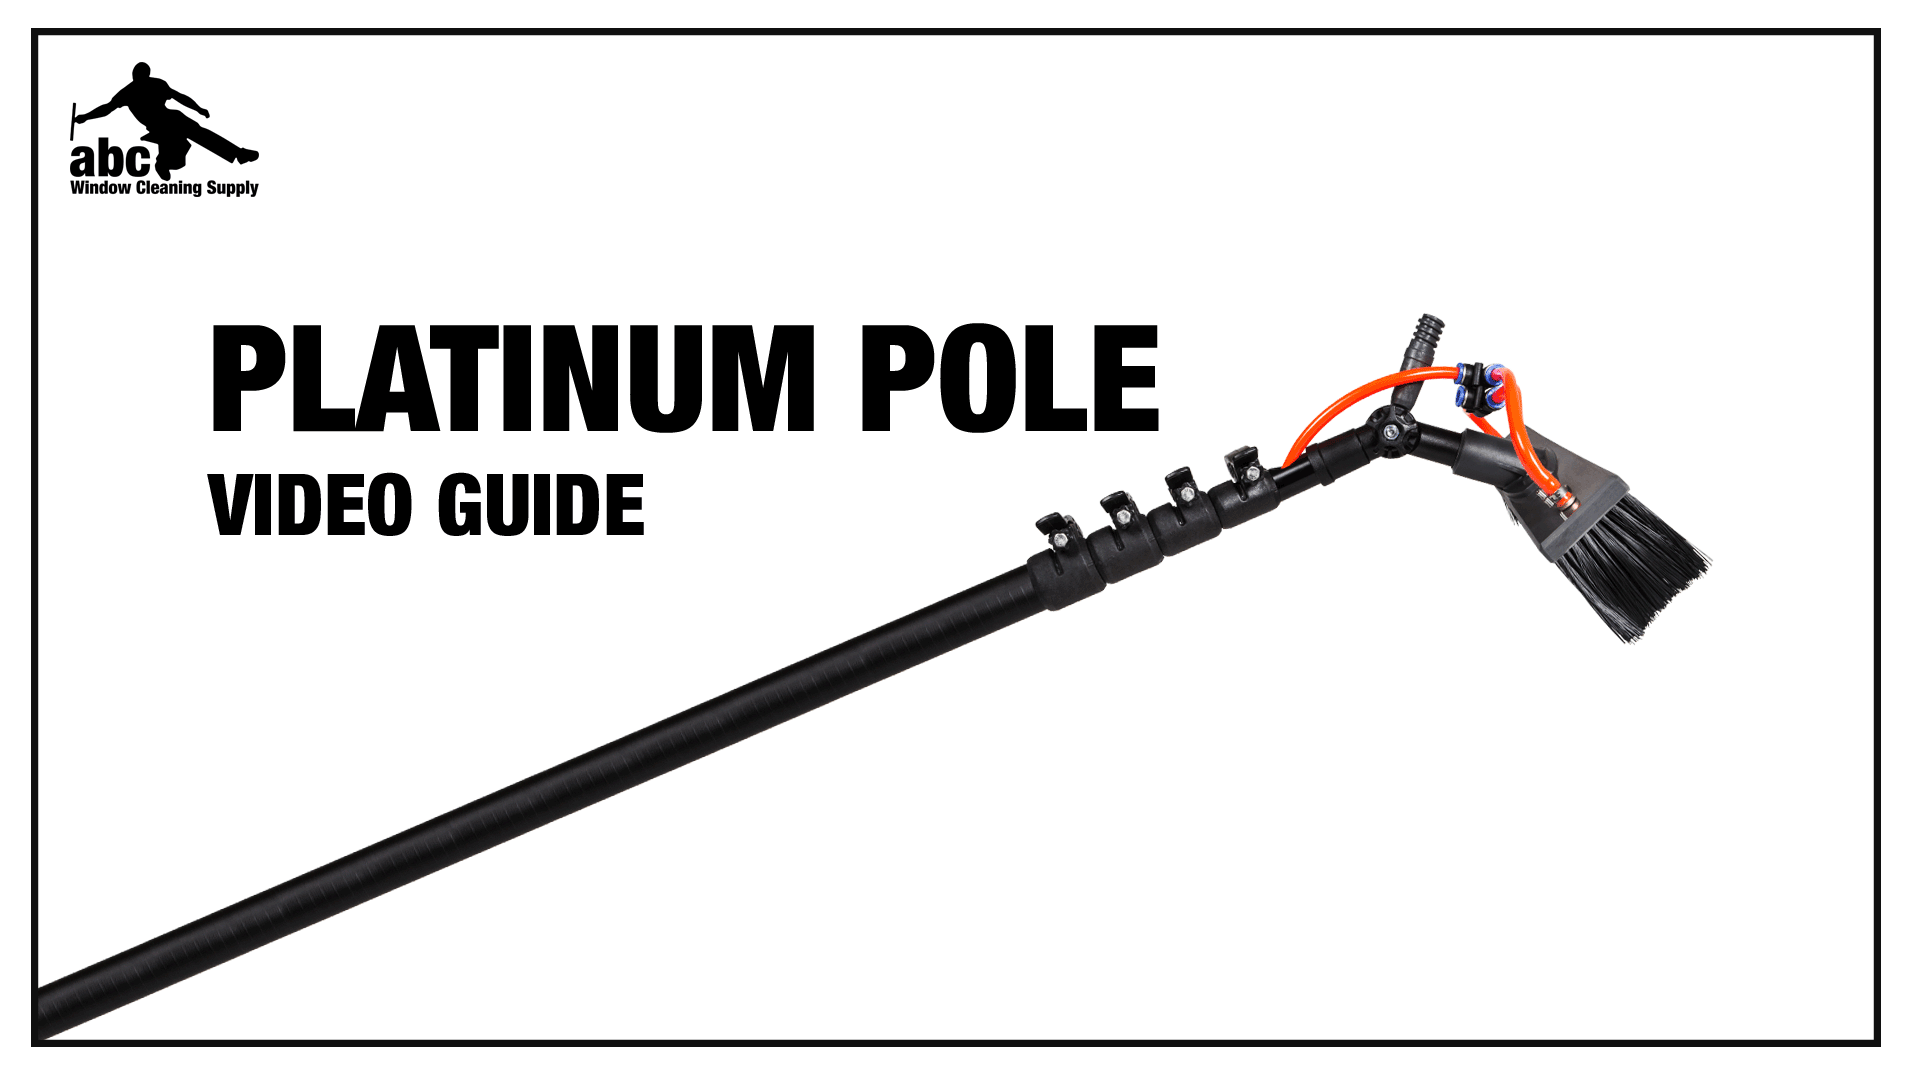 High Modulus Carbon Fiber Triple Crown Platinum Waterfed Pole